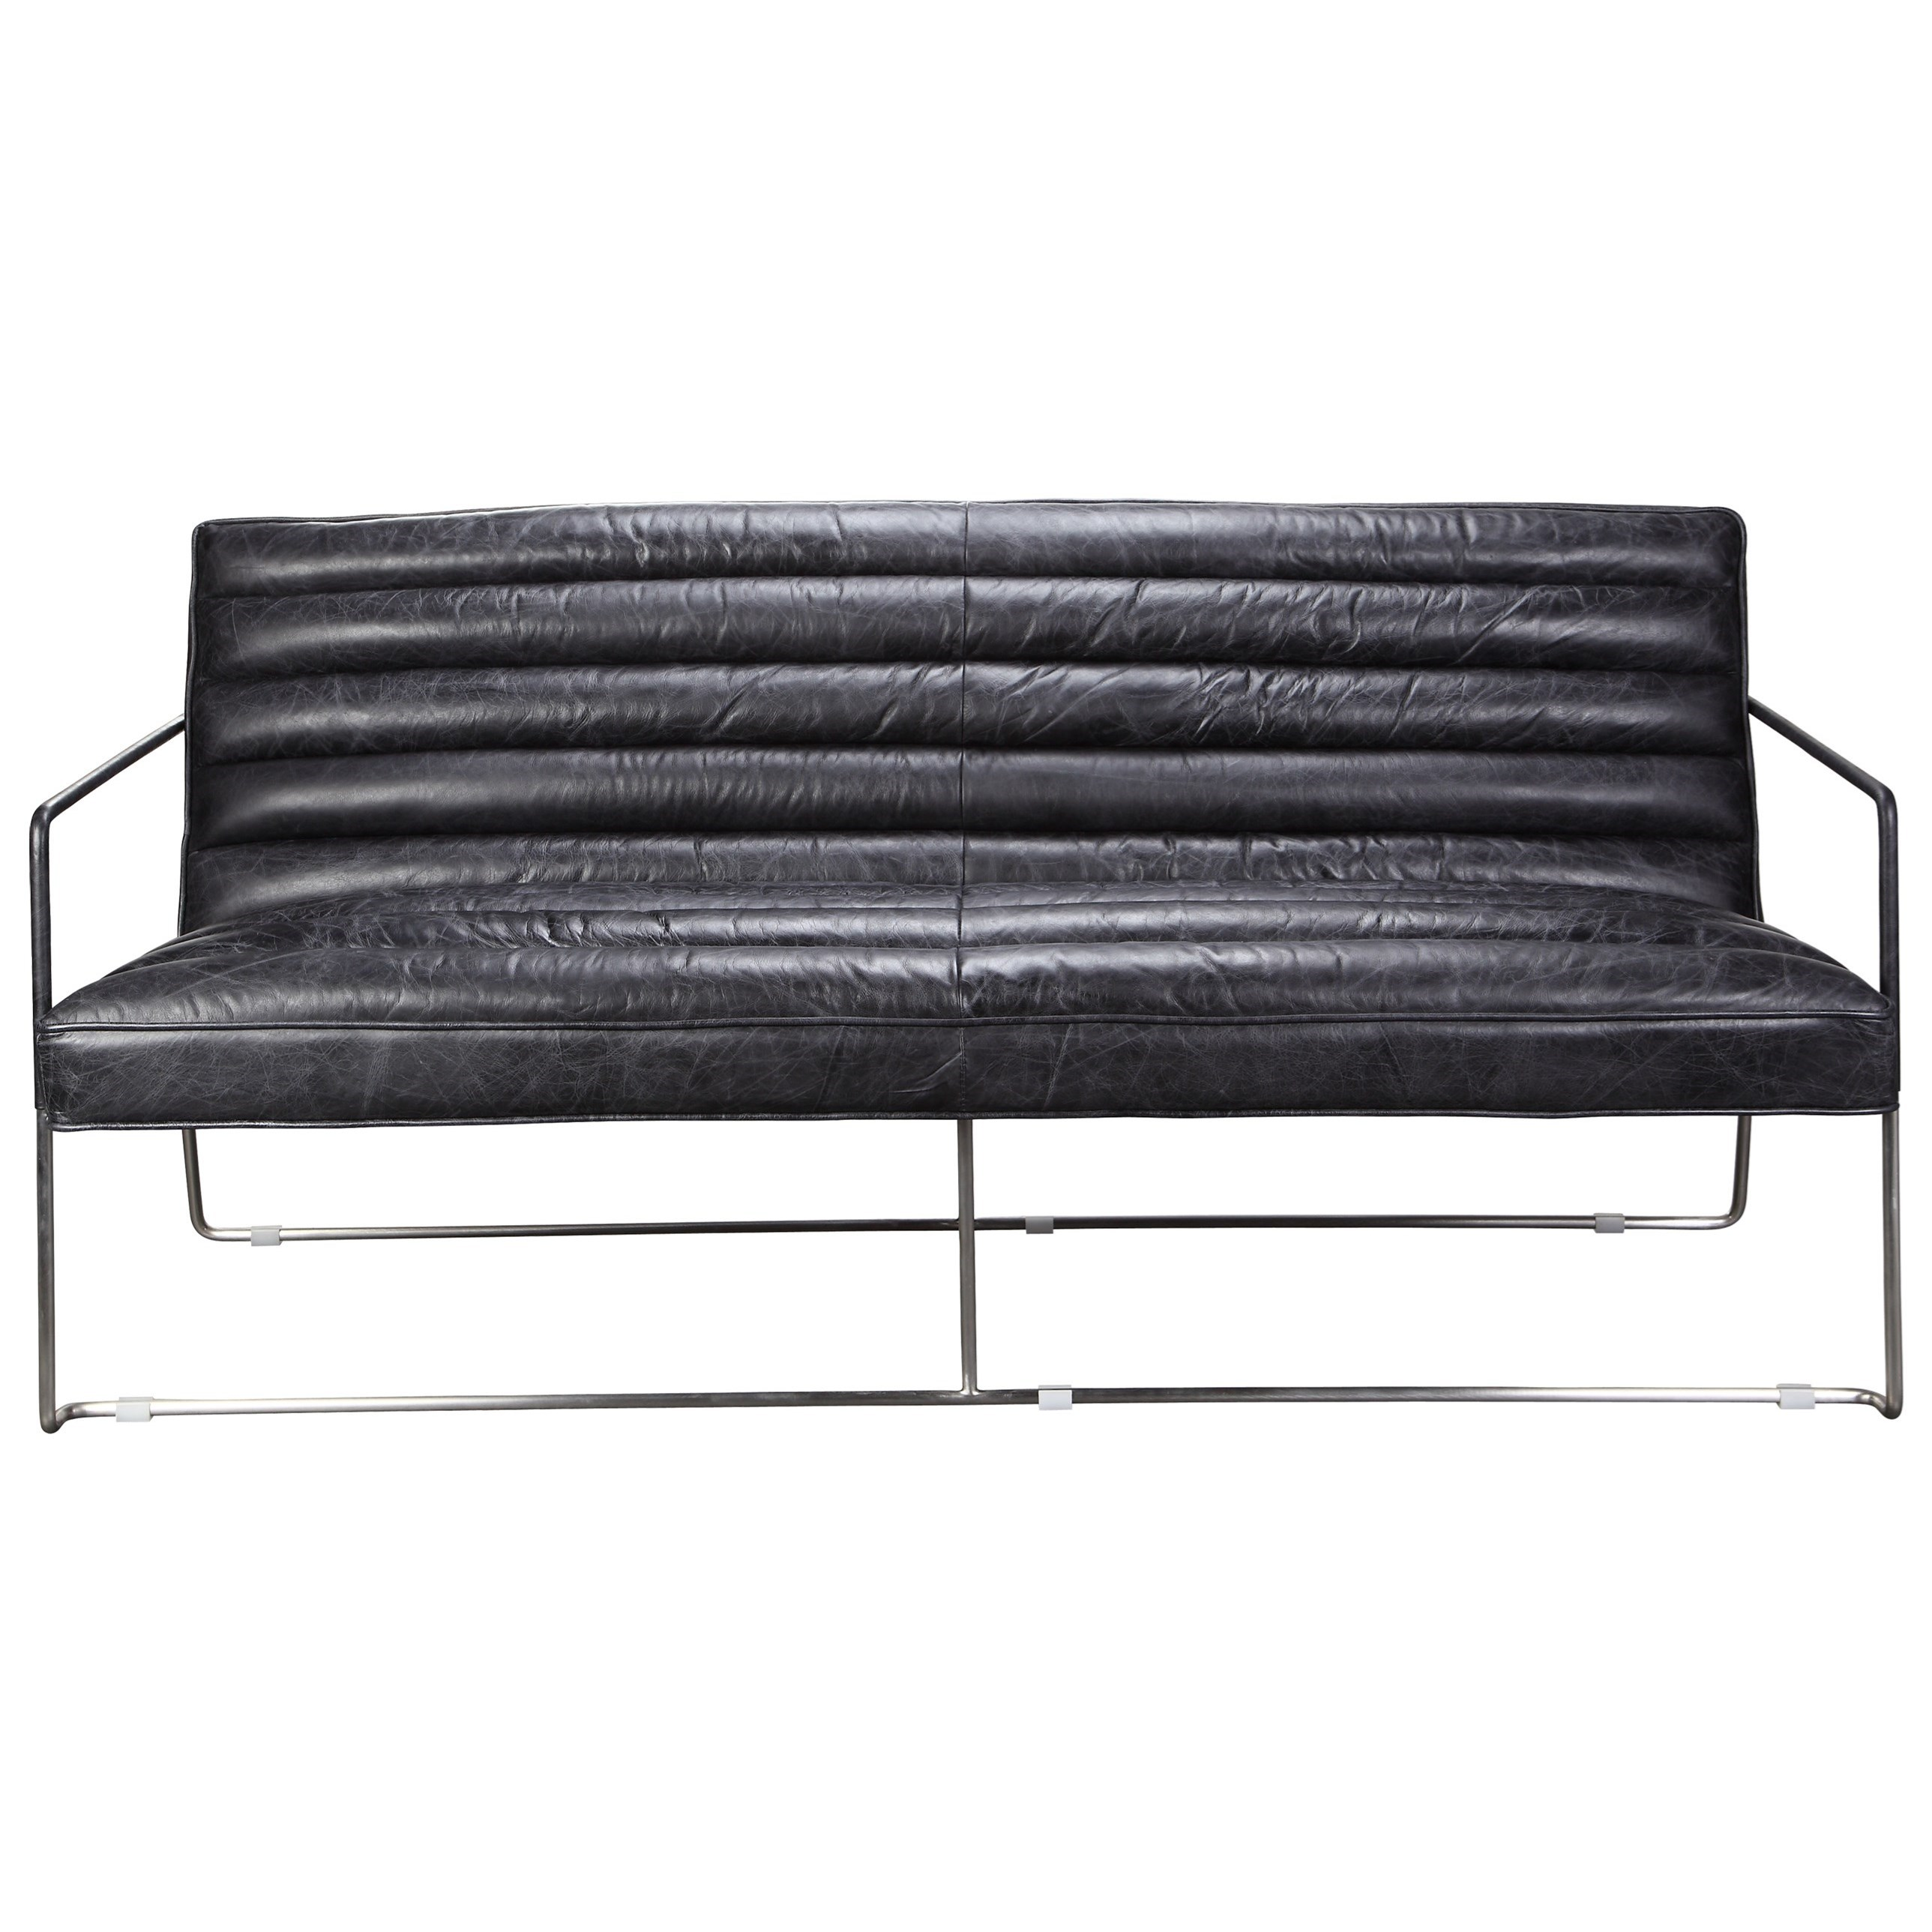 Desmond Sofa by Moe's Home Collection at Stoney Creek Furniture